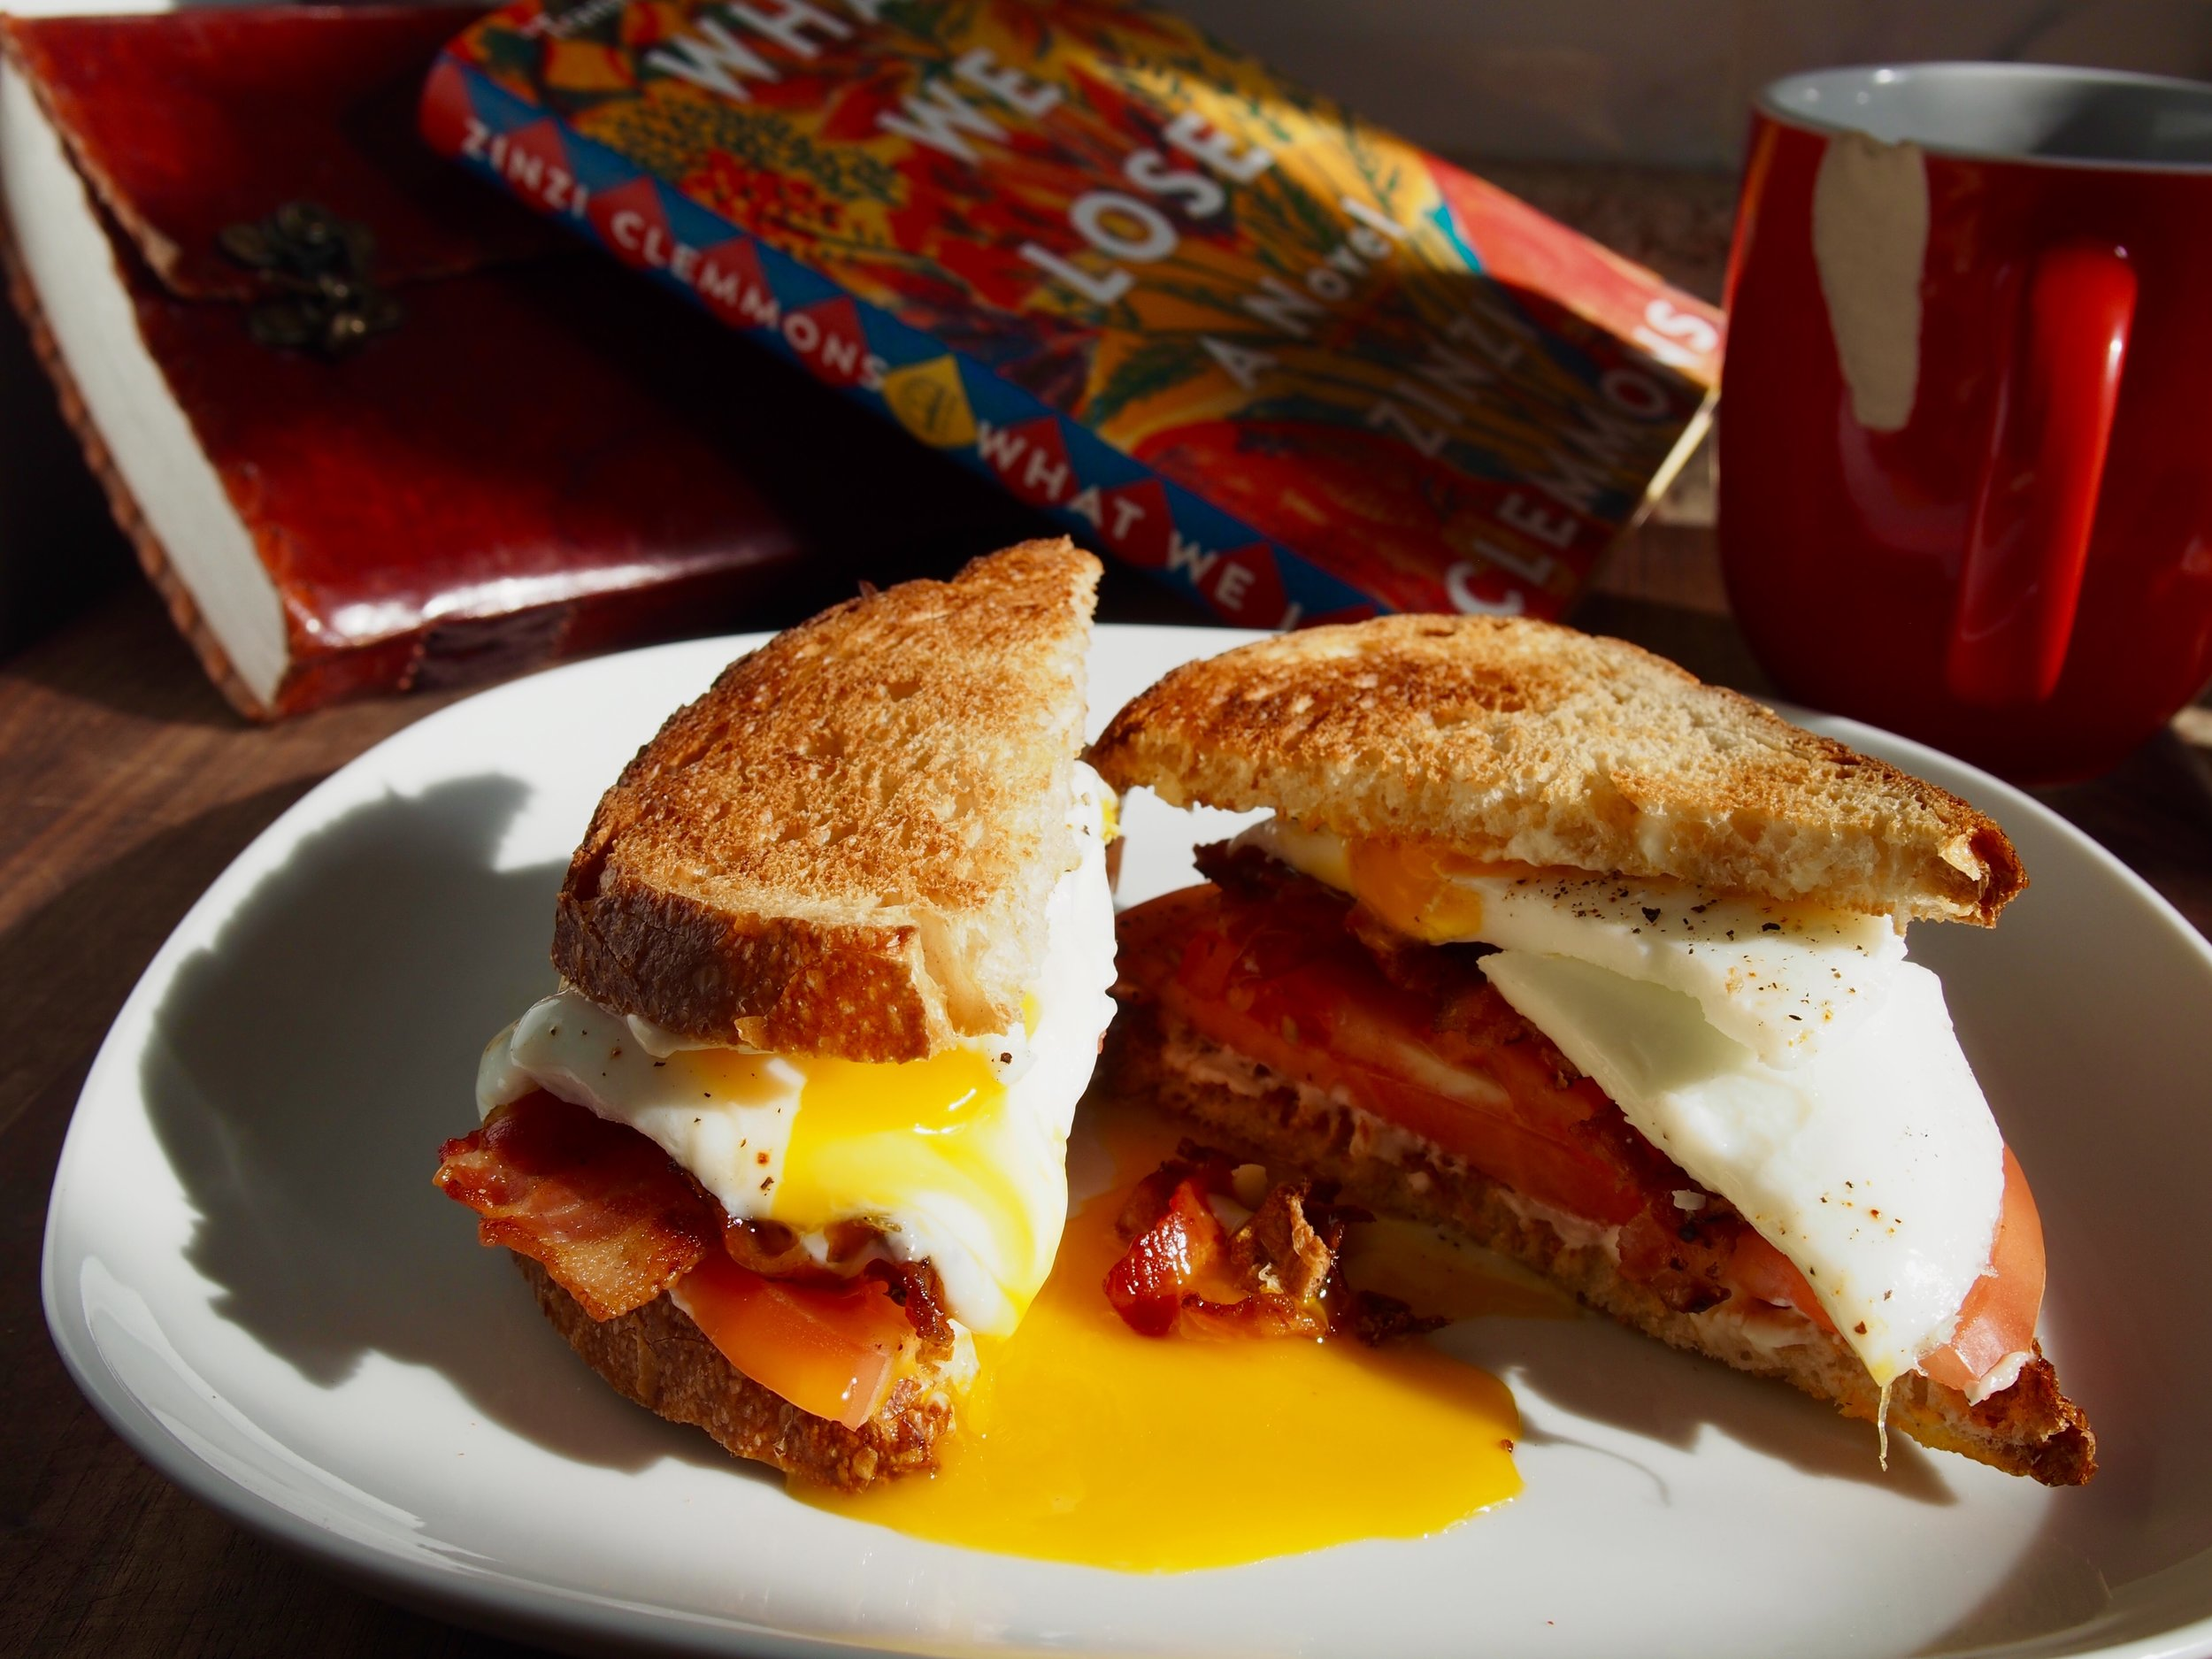 Ingredients: Toasted Sourdough bread, fried eggs (sunny-side up and yolky), bacon , tomato, and mayonnaise.